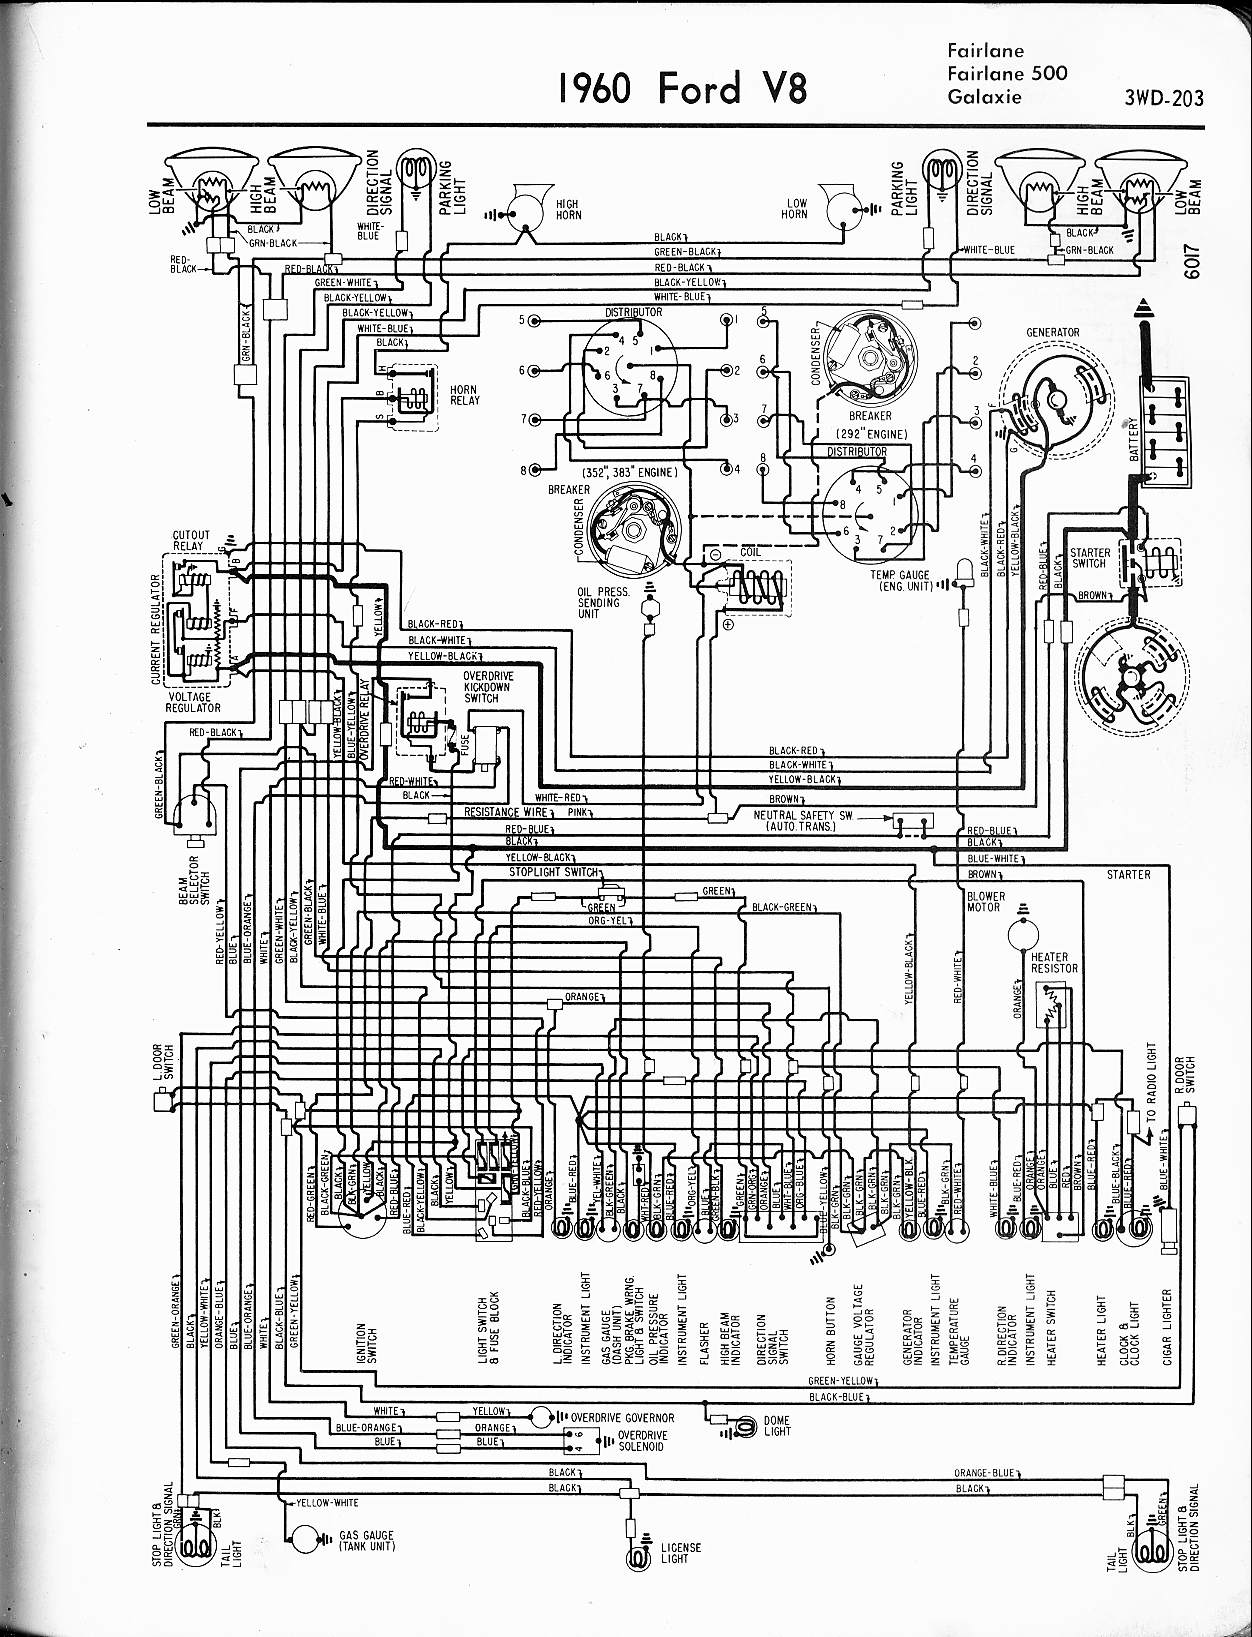 wiring diagram 1965 ford galaxie information schematics wiring 65 Fairlane 2 Door Wagon